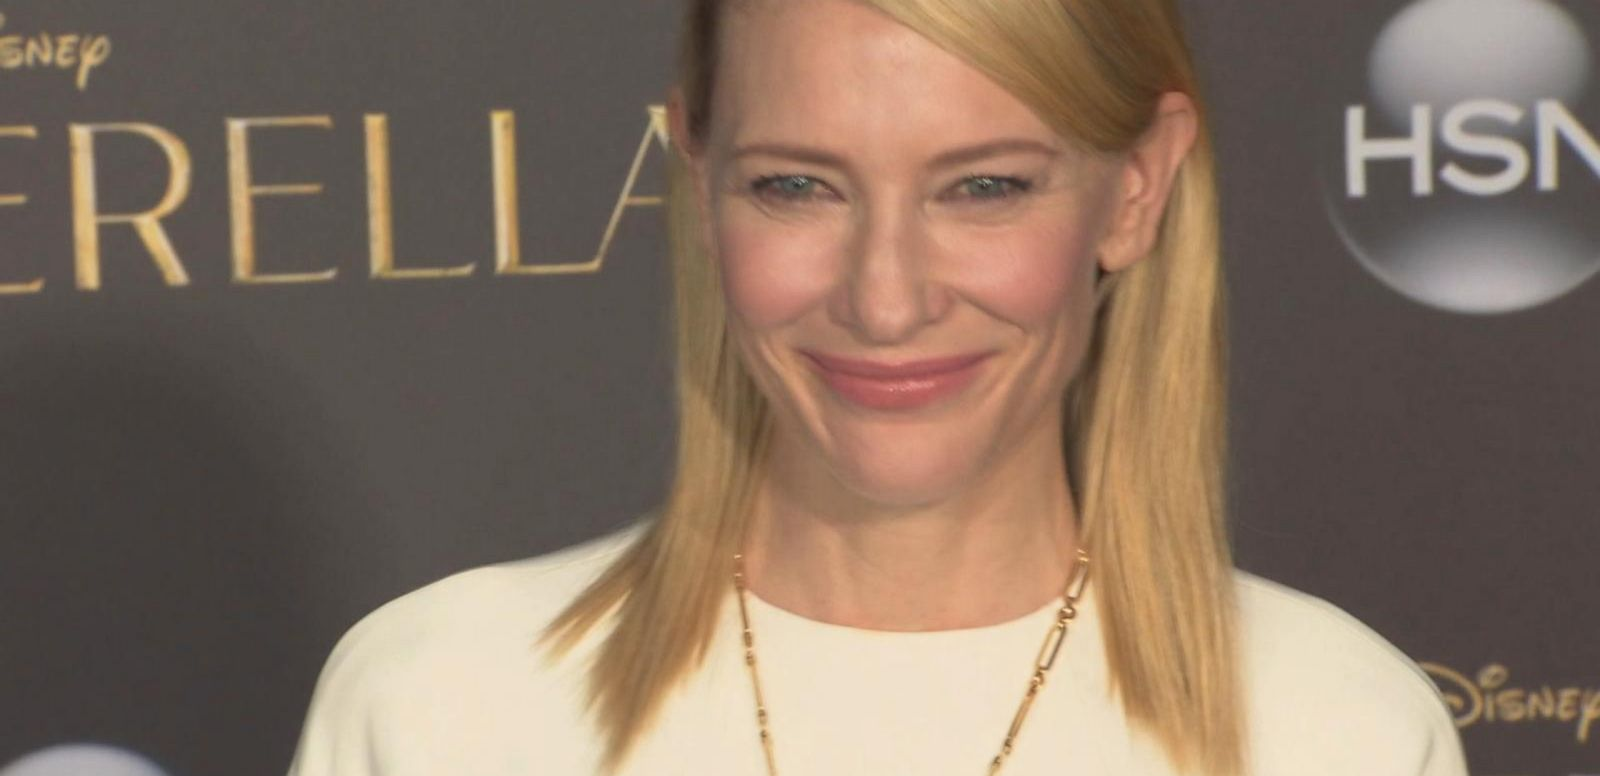 VIDEO: Cate Blanchett to Play Lucille Ball in Aaron Sorkin Biopic